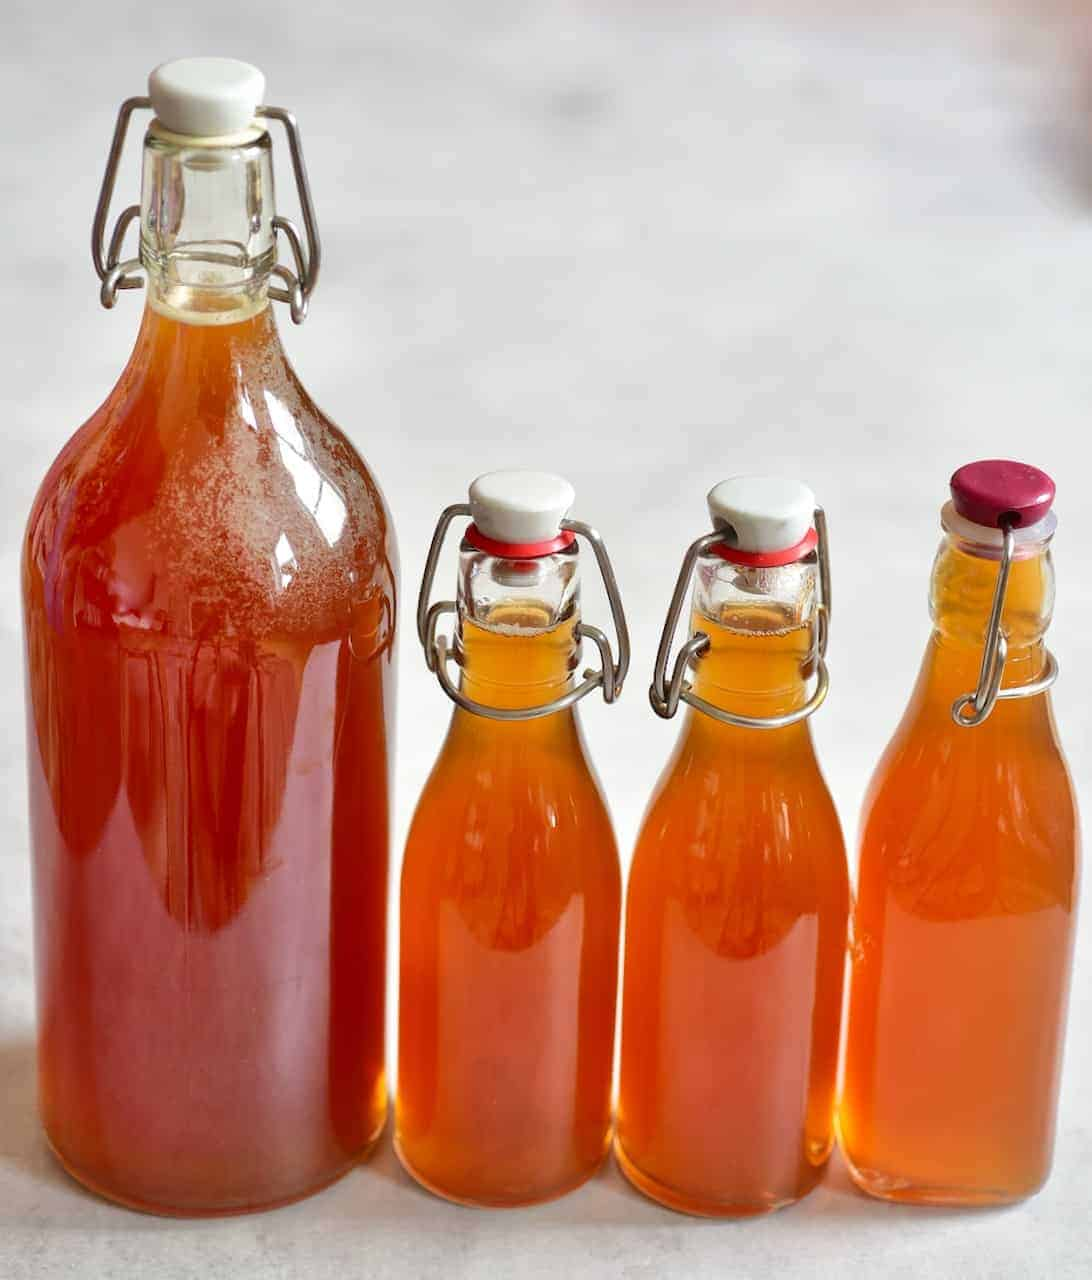 homemade kombucha diy in glass bottles